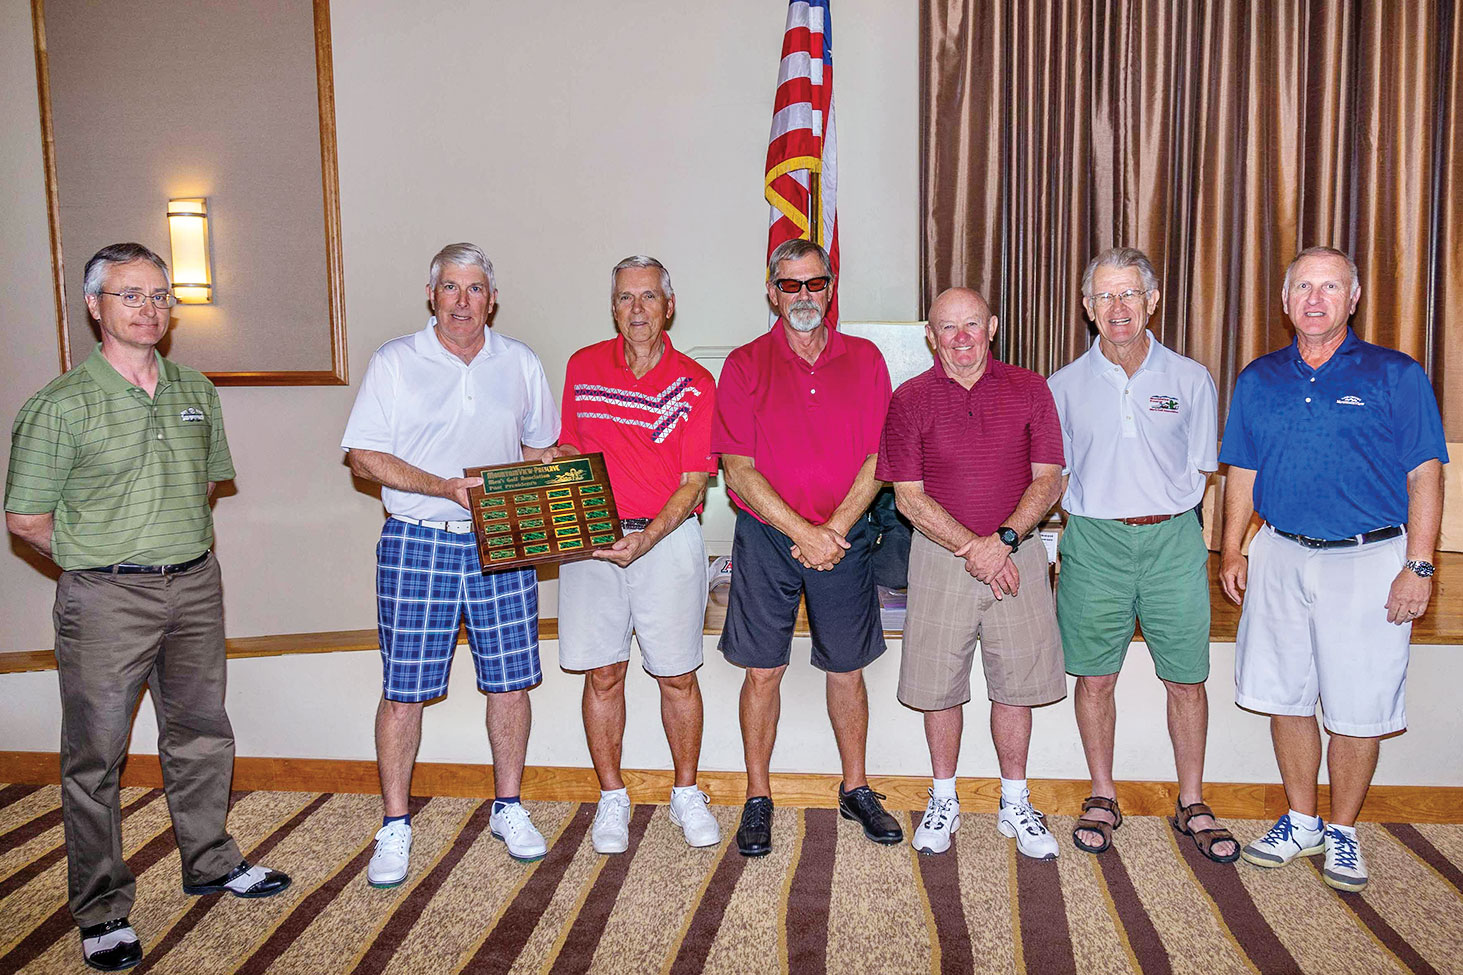 Mike Jahaske and past presidents Jon Michels, Chuck Kelsey, John Borchert, Tom Pryde, Ed Koch and current President Dennis Marchand receiving the plaque